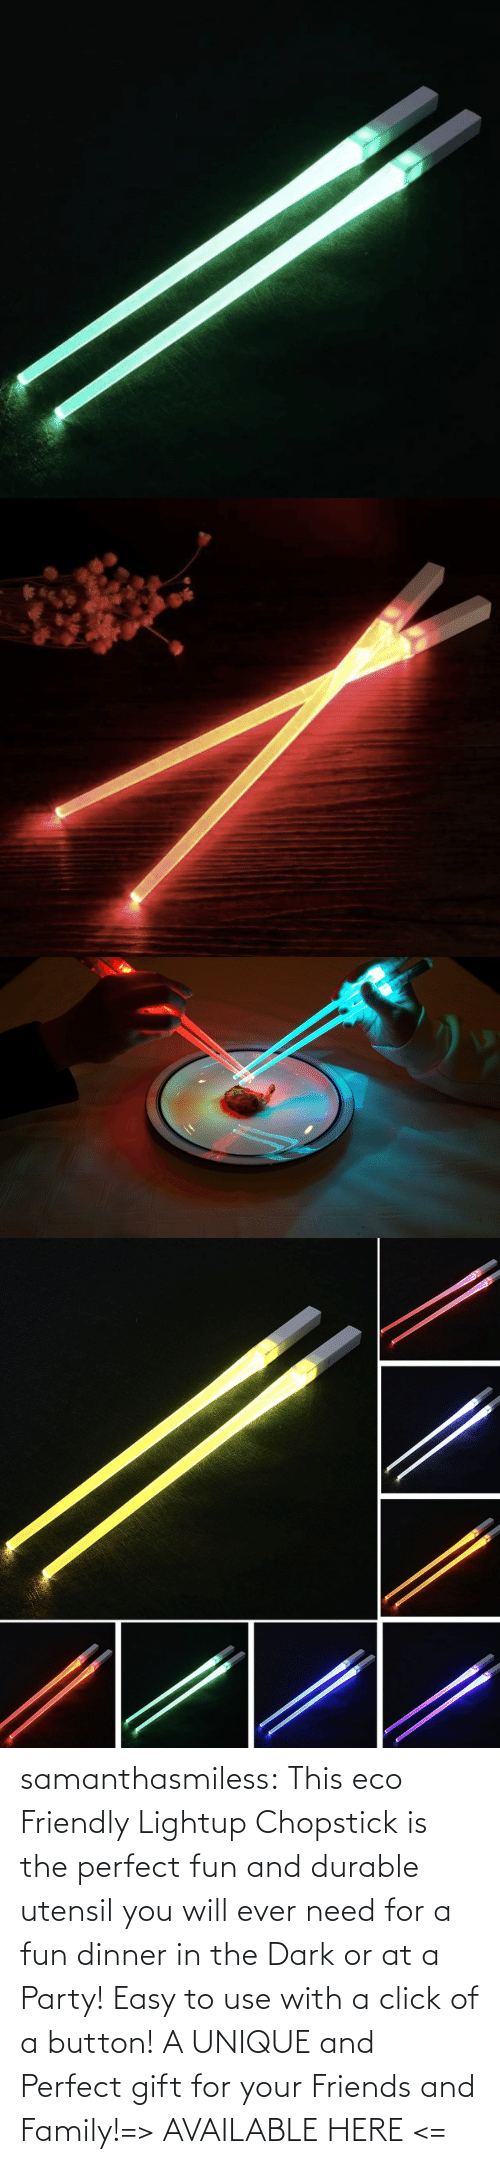 fun: samanthasmiless:  This eco Friendly Lightup Chopstick is the perfect fun and durable utensil you will ever need for a fun dinner in the Dark or at a Party! Easy to use with a click of a button! A UNIQUE and Perfect gift for your Friends and Family!=> AVAILABLE HERE <=